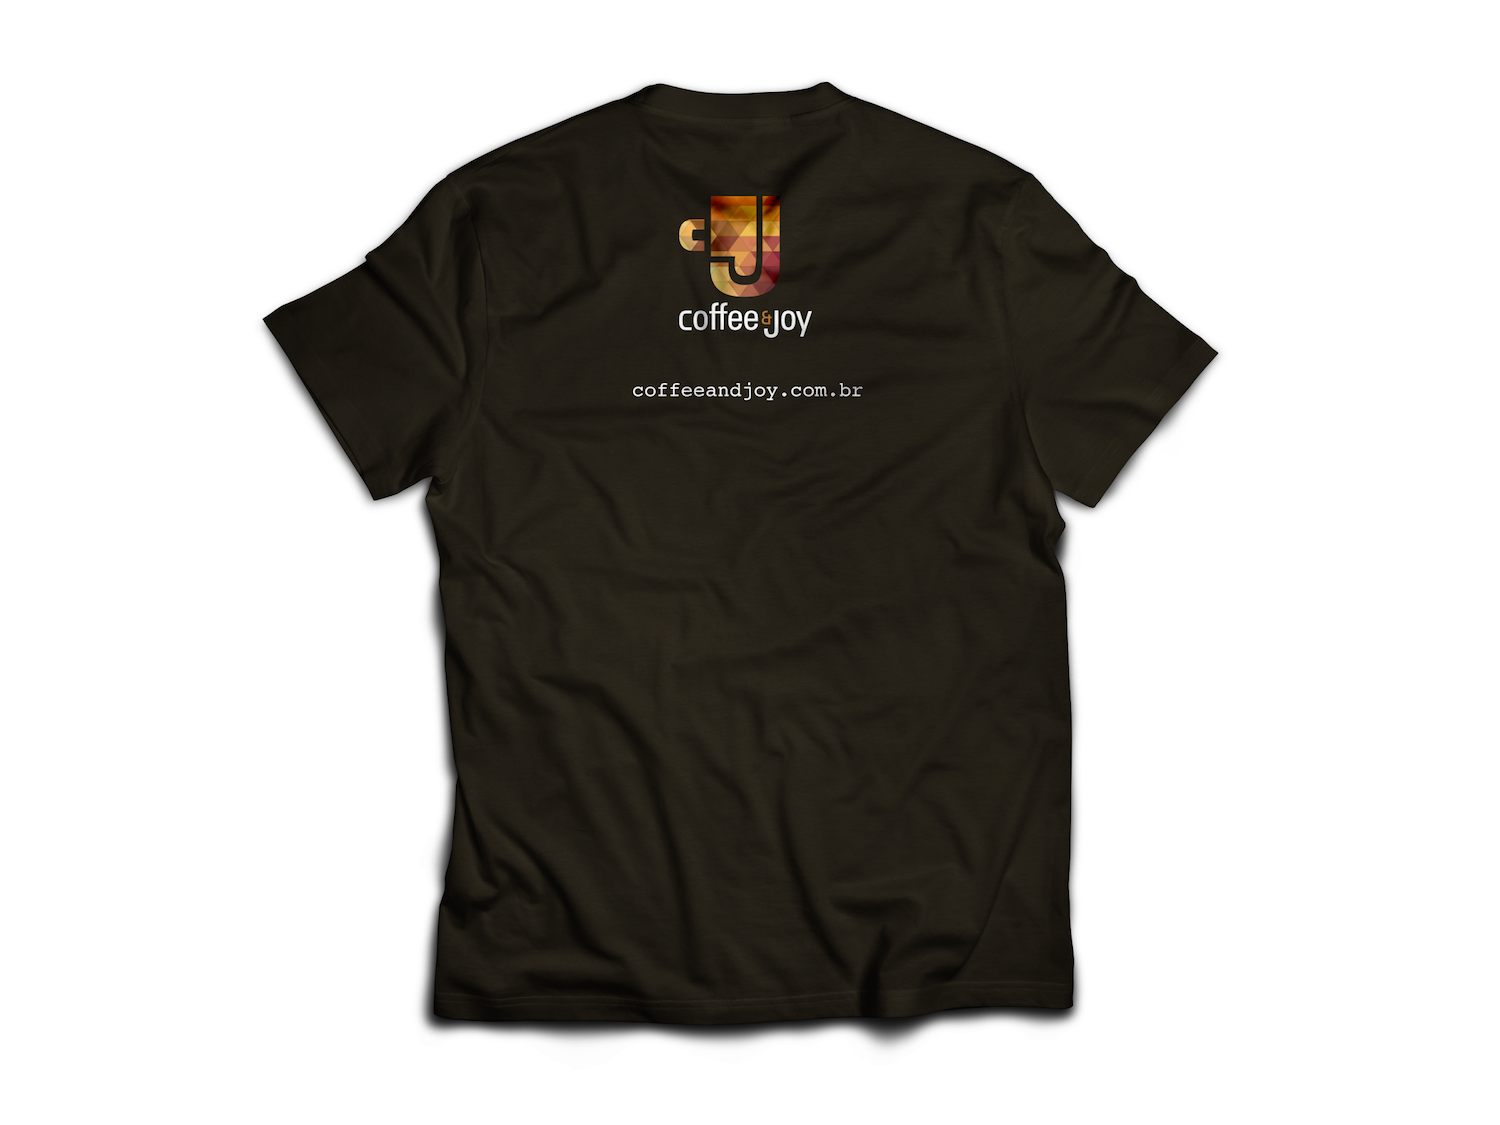 Camiseta cafe coffeetime coffeeandjoy